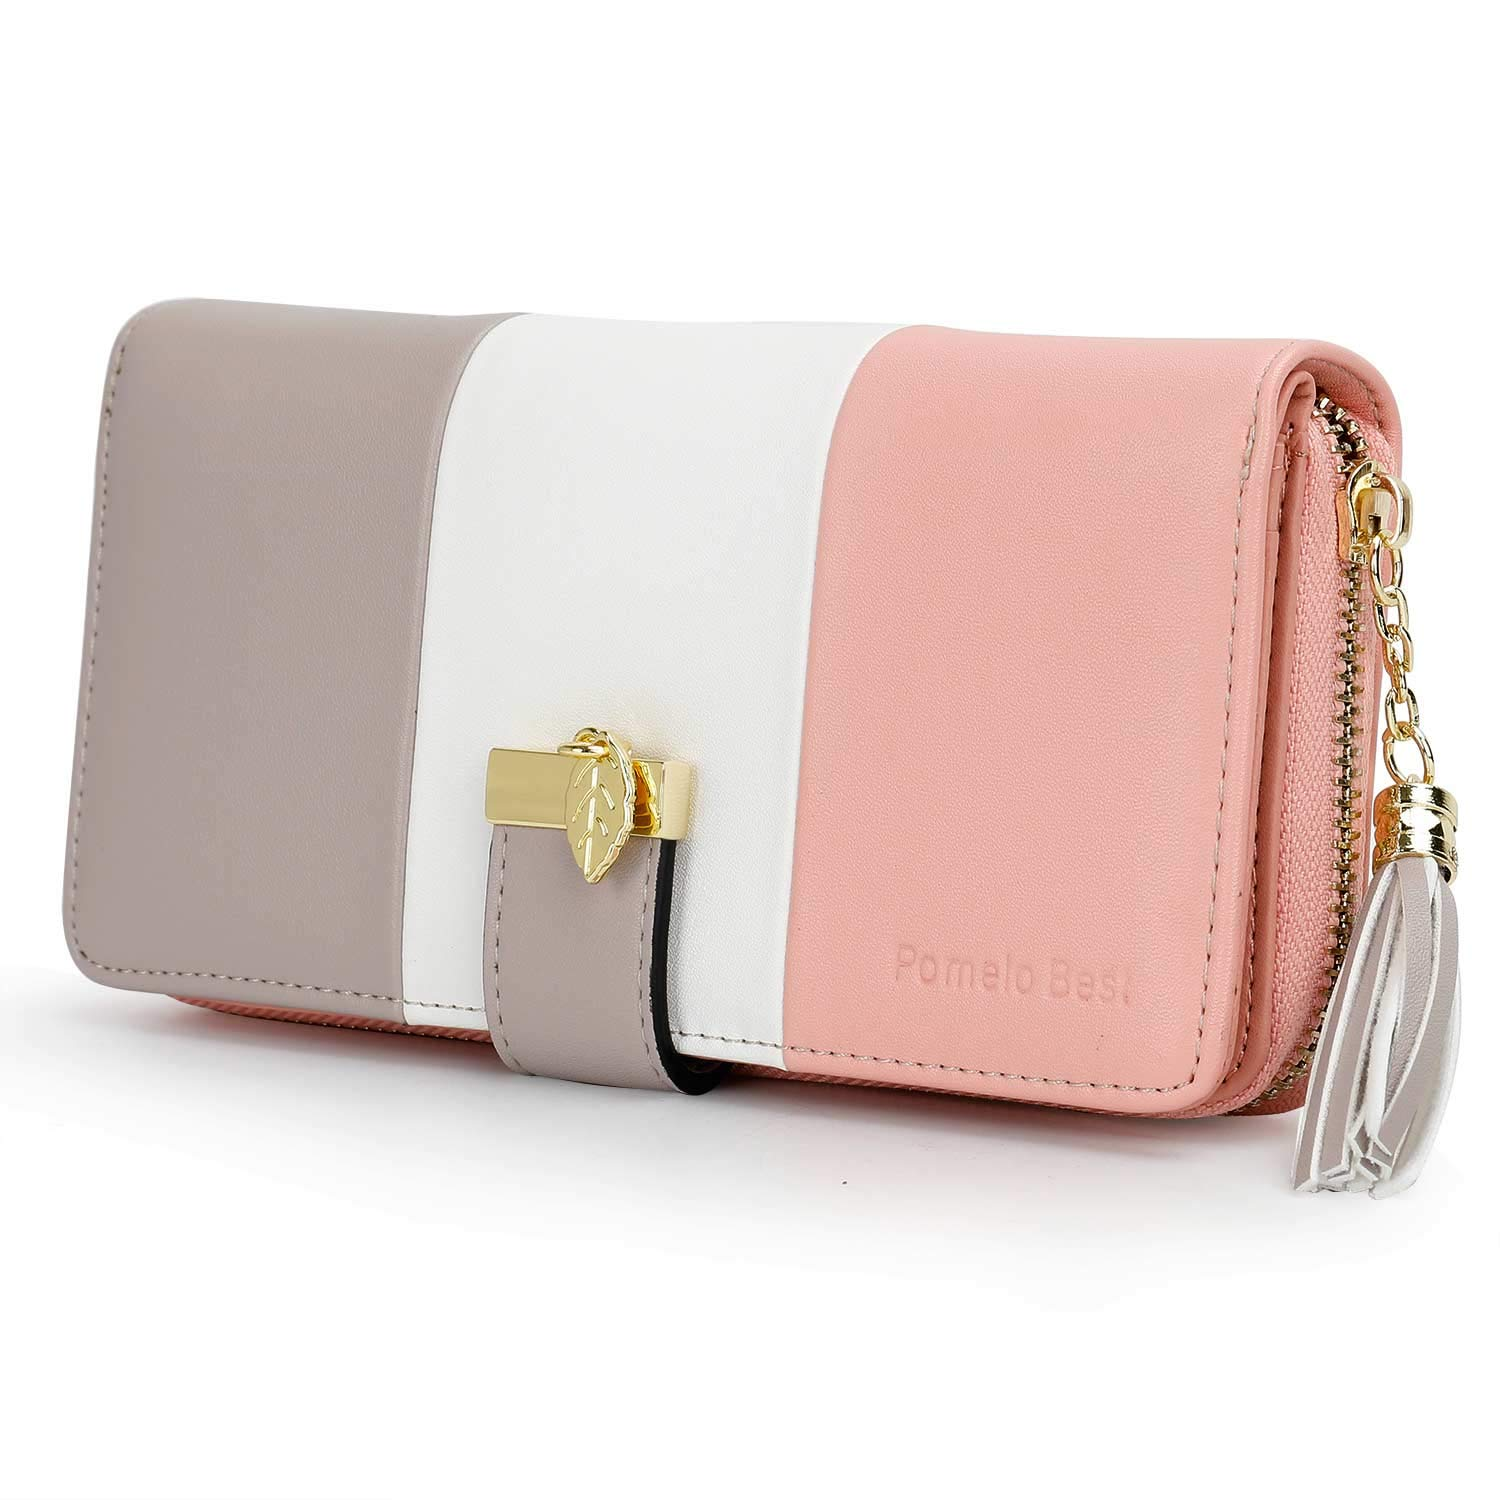 Wallets for Women with Multiple Card Slots and Roomy Compartment by Pomelo Best